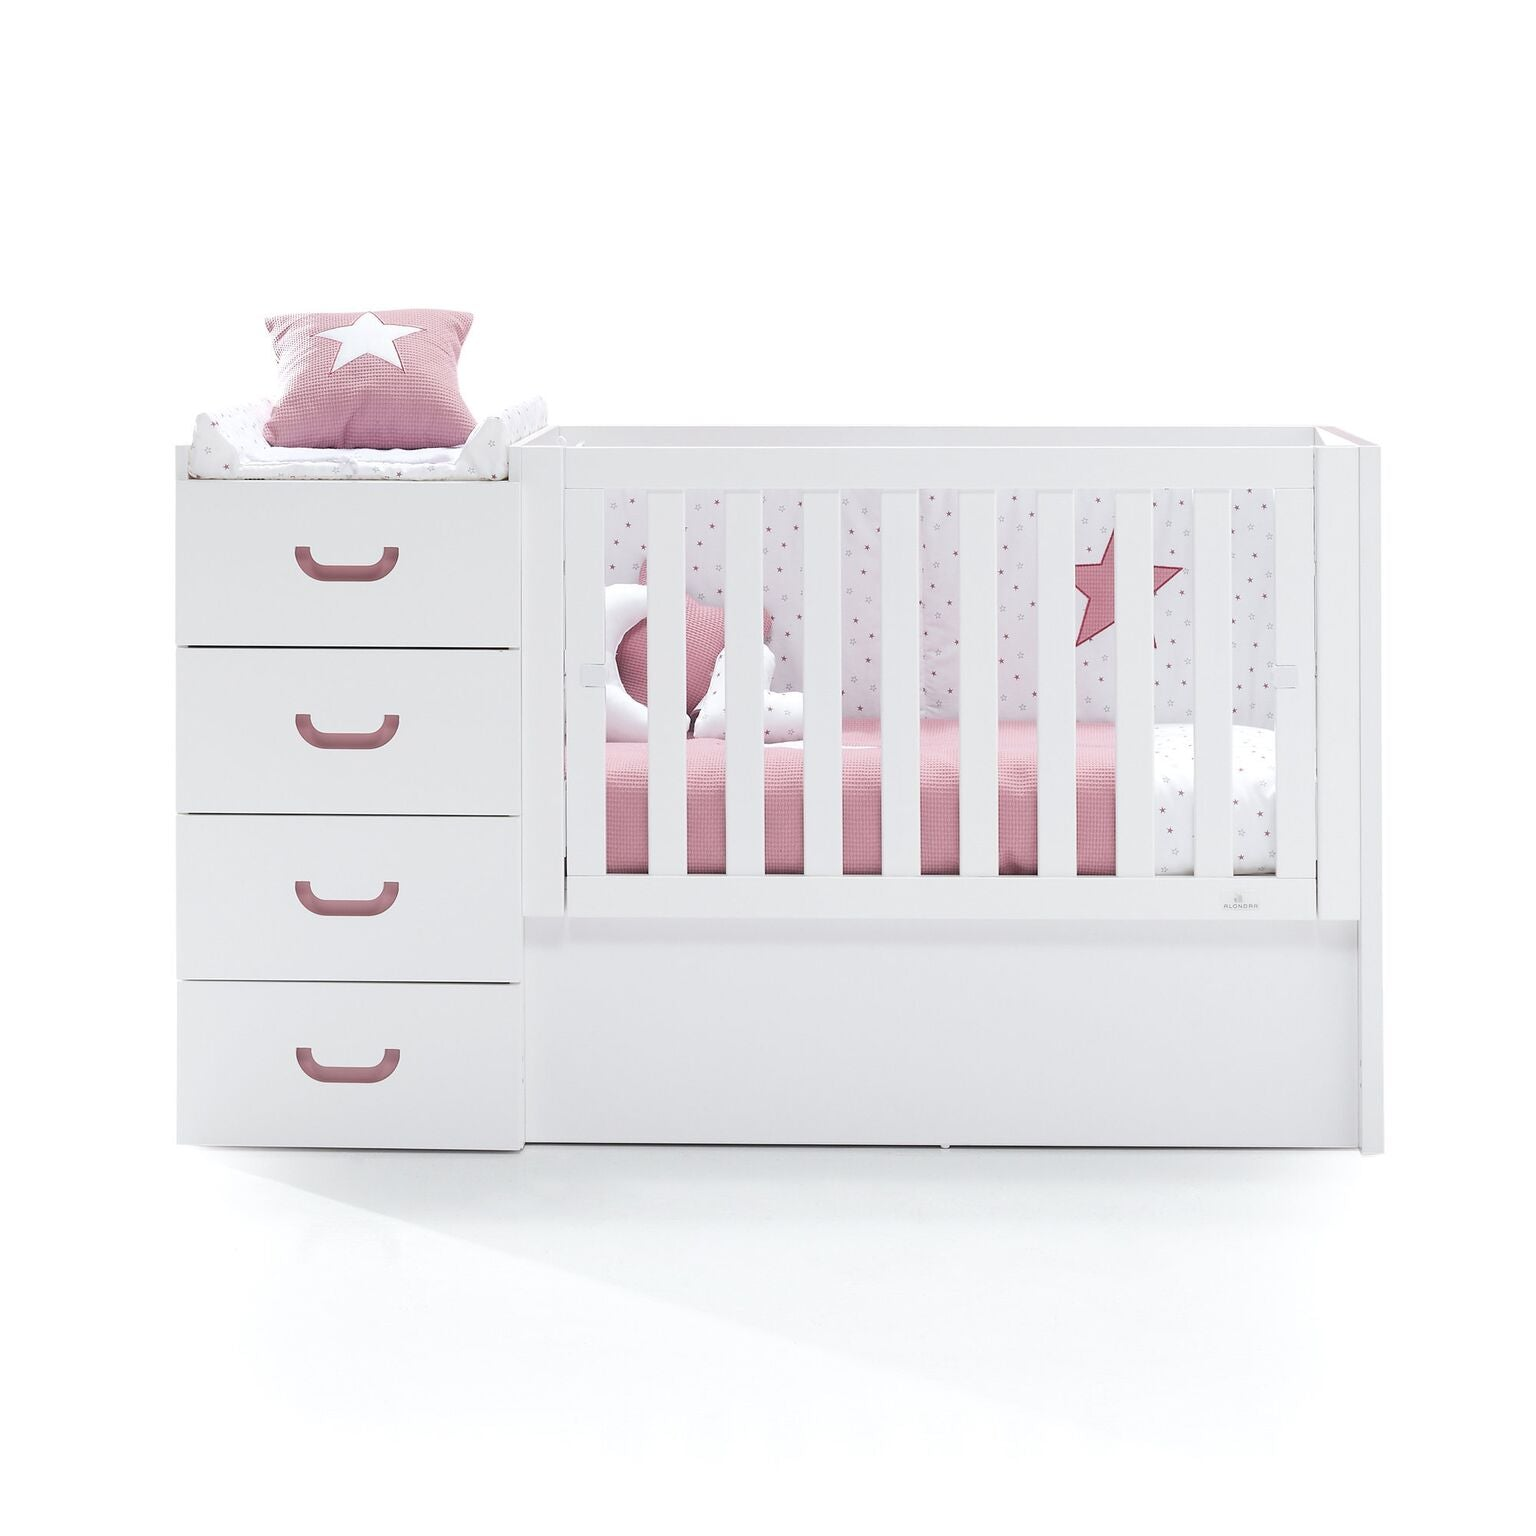 Alondra Convertible Crib Just Joy - Rose